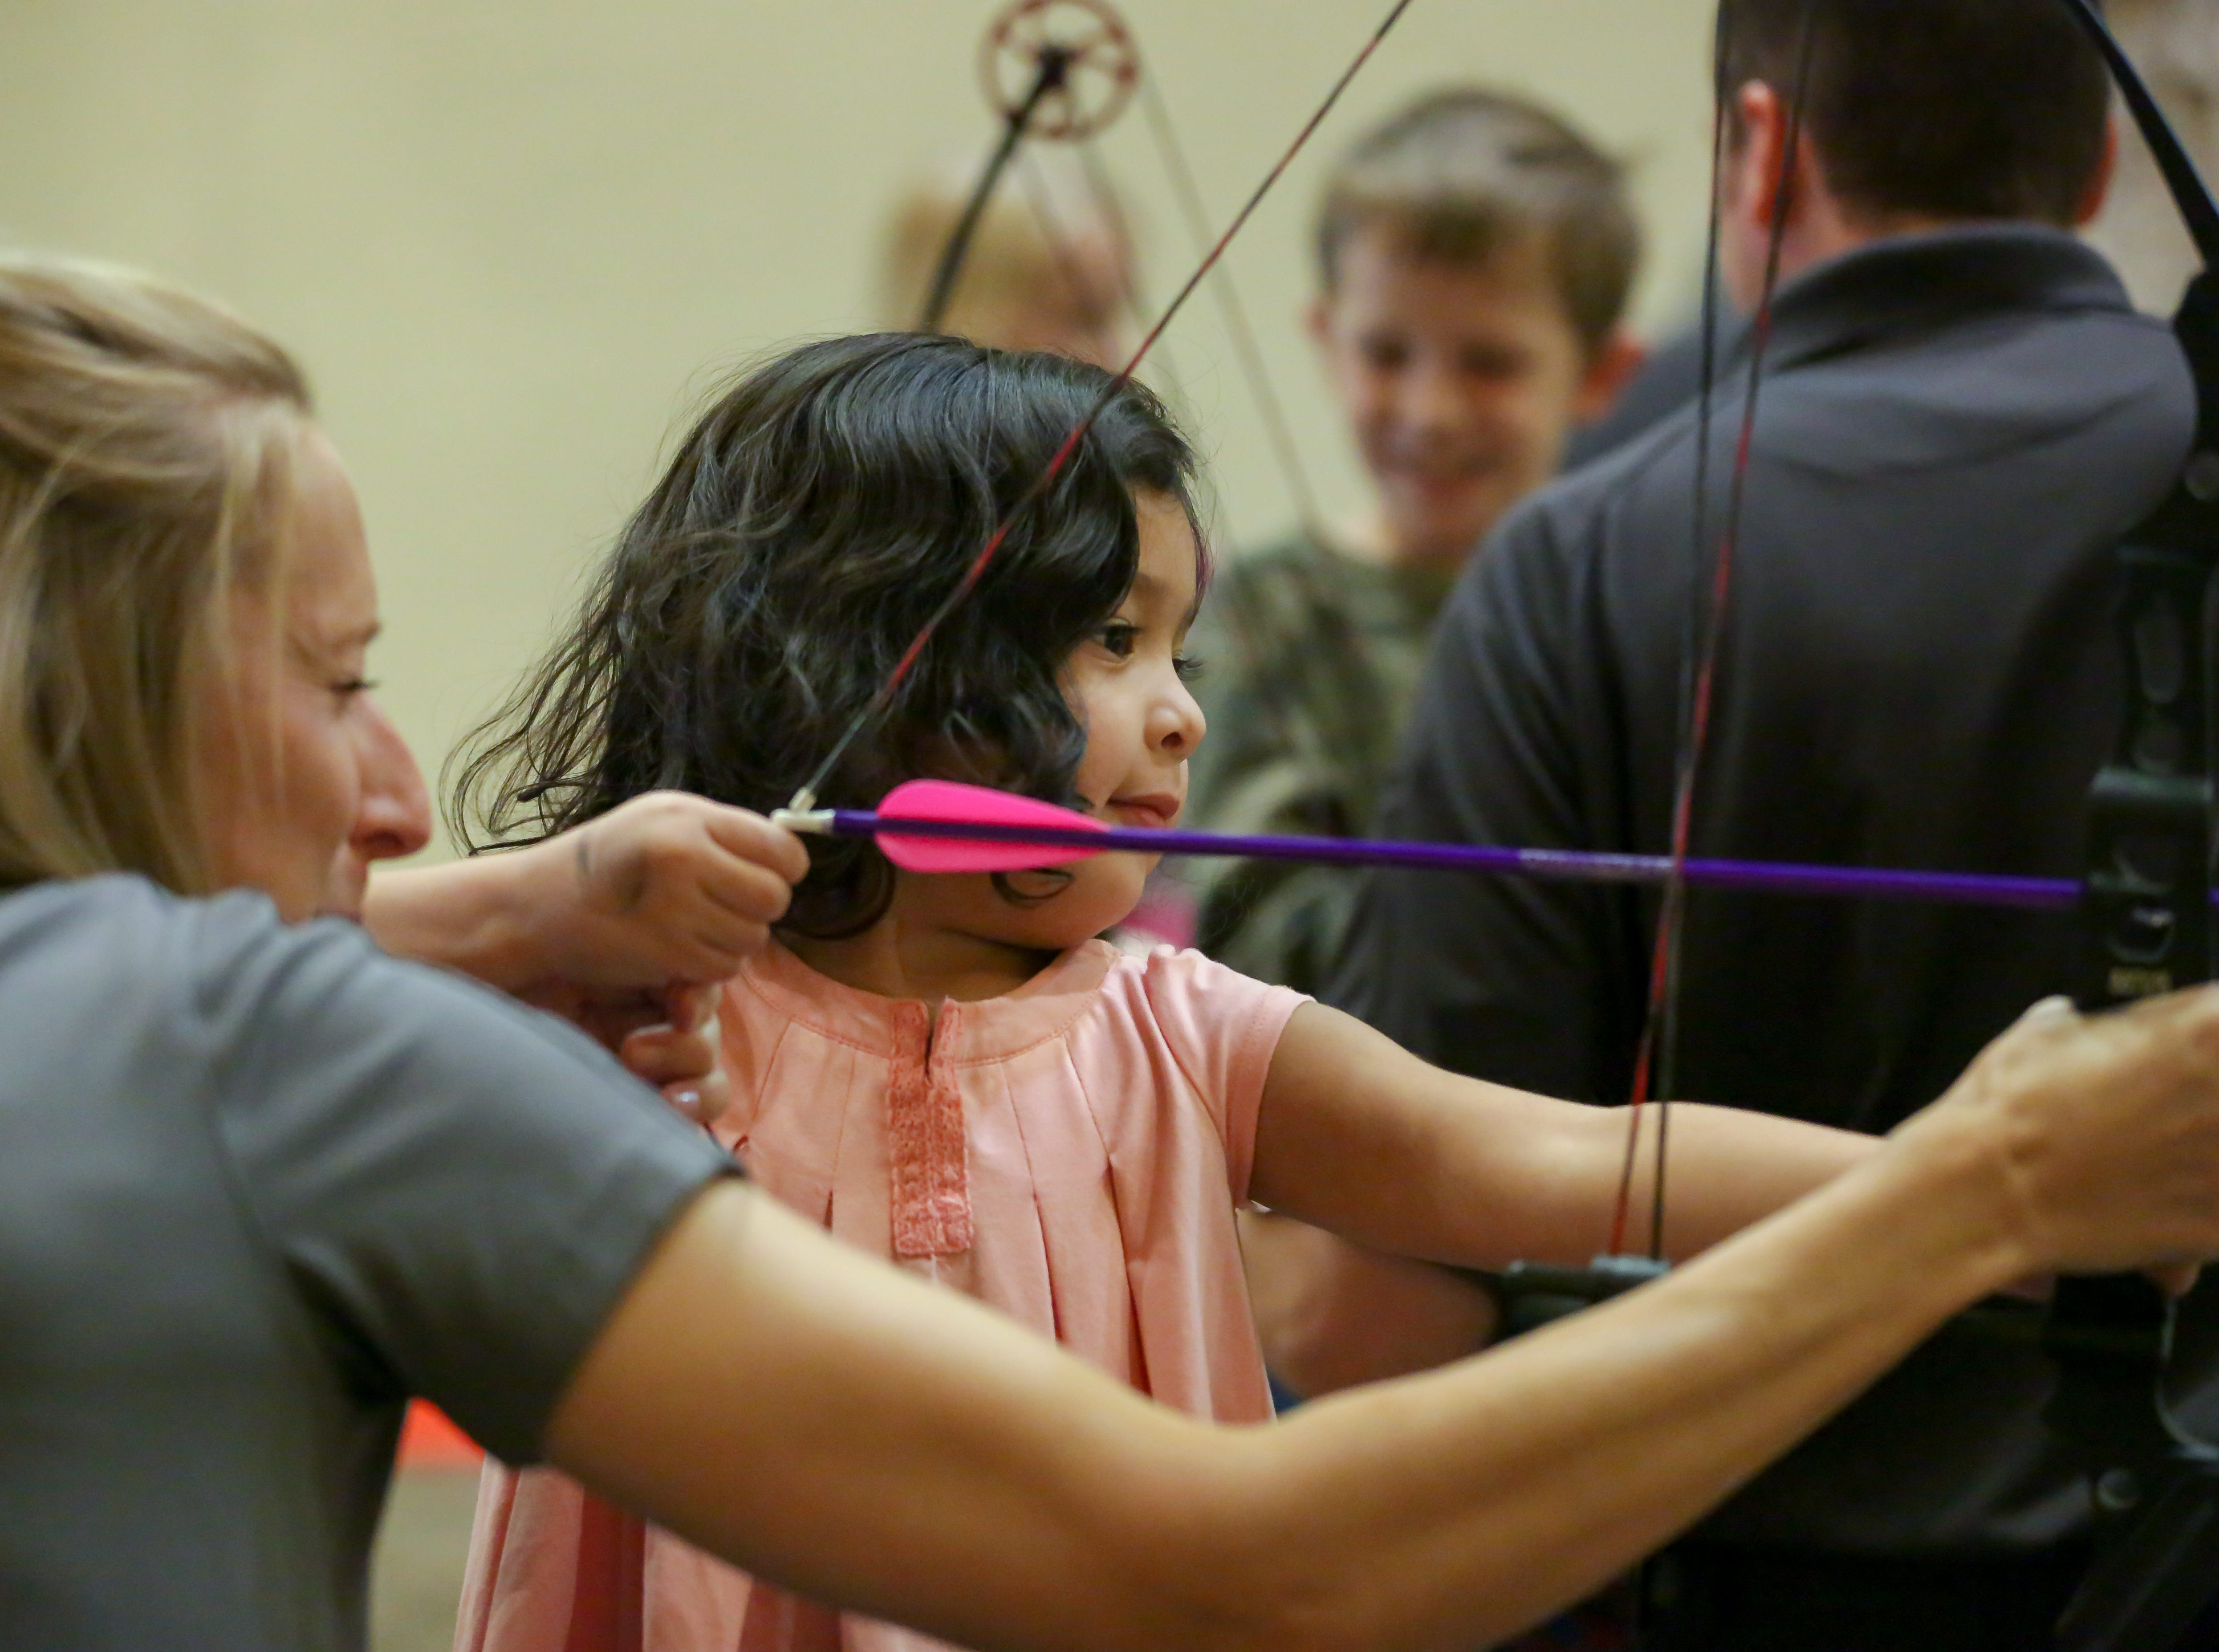 Aleena Gonzales, 3, of Las Cruces, learns how to use a Mathews Genesis bow on Saturday, Jan. 12, 2019, during the 2019 Mesilla Valley Outdoor Expo at the Las Cruces Convention Center. Assisting Gonzales is New Mexico Department of Game & Fish communications director Tristanna Brickford.